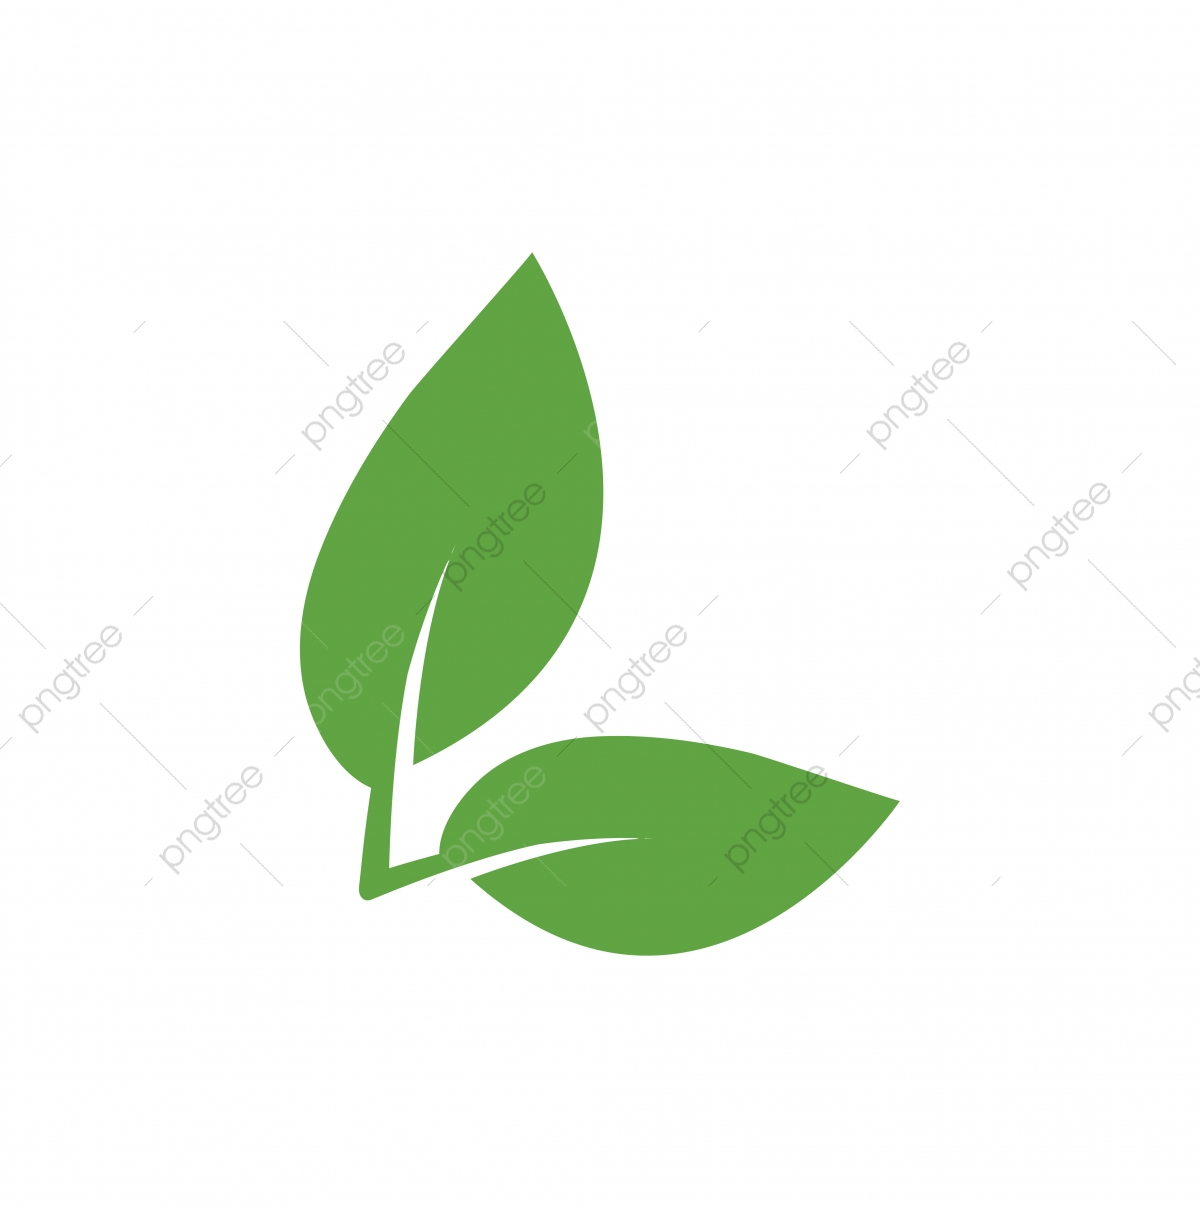 Green Leaf Icon Graphic Design Template Vector, Leaf, Icon.